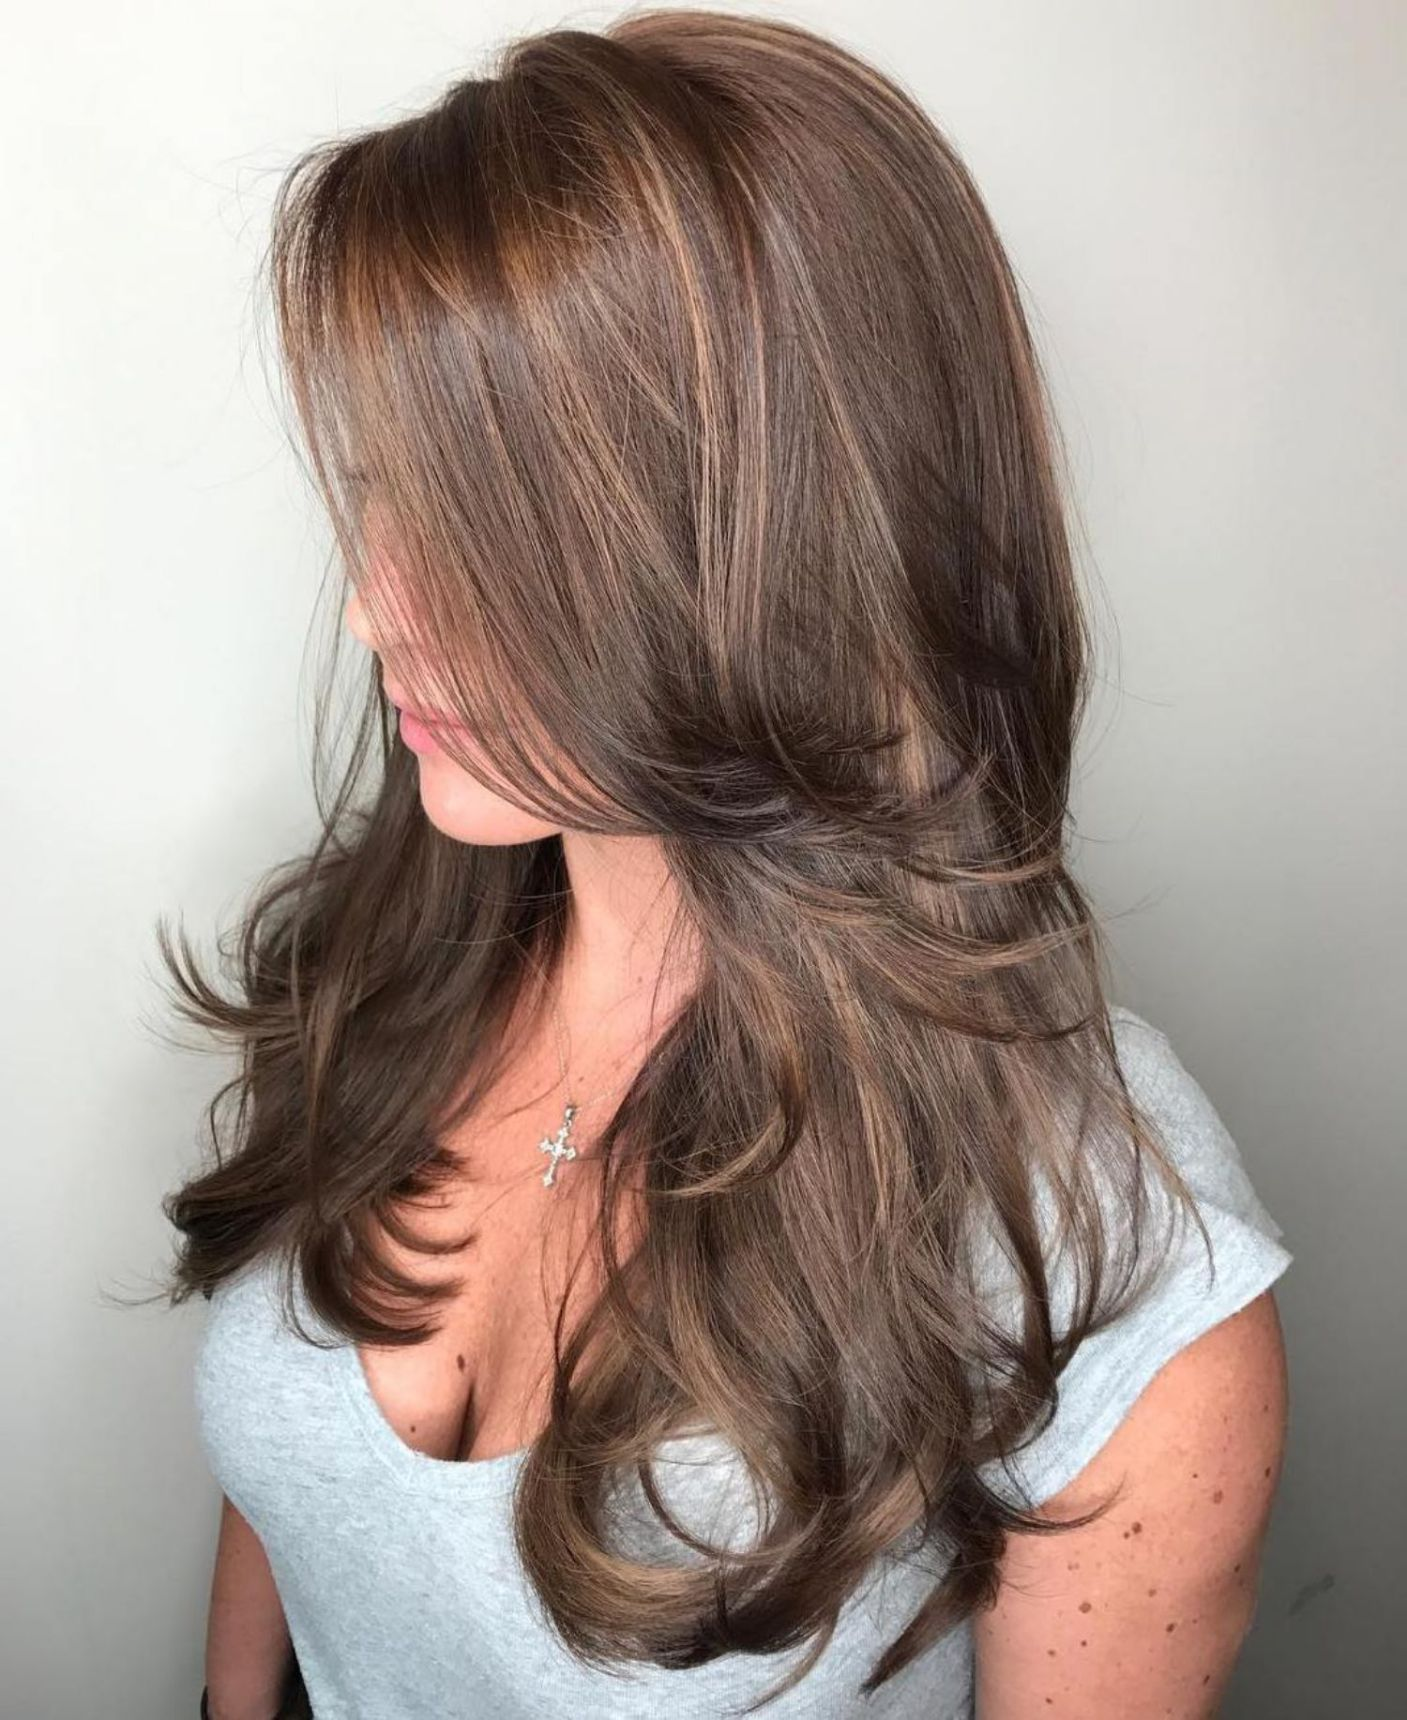 Feathered Long Layered Haircuts For Thin Hair Pinchouse In 2020 Haircuts For Long Hair With Layers Long Layered Haircuts Long Hair Styles